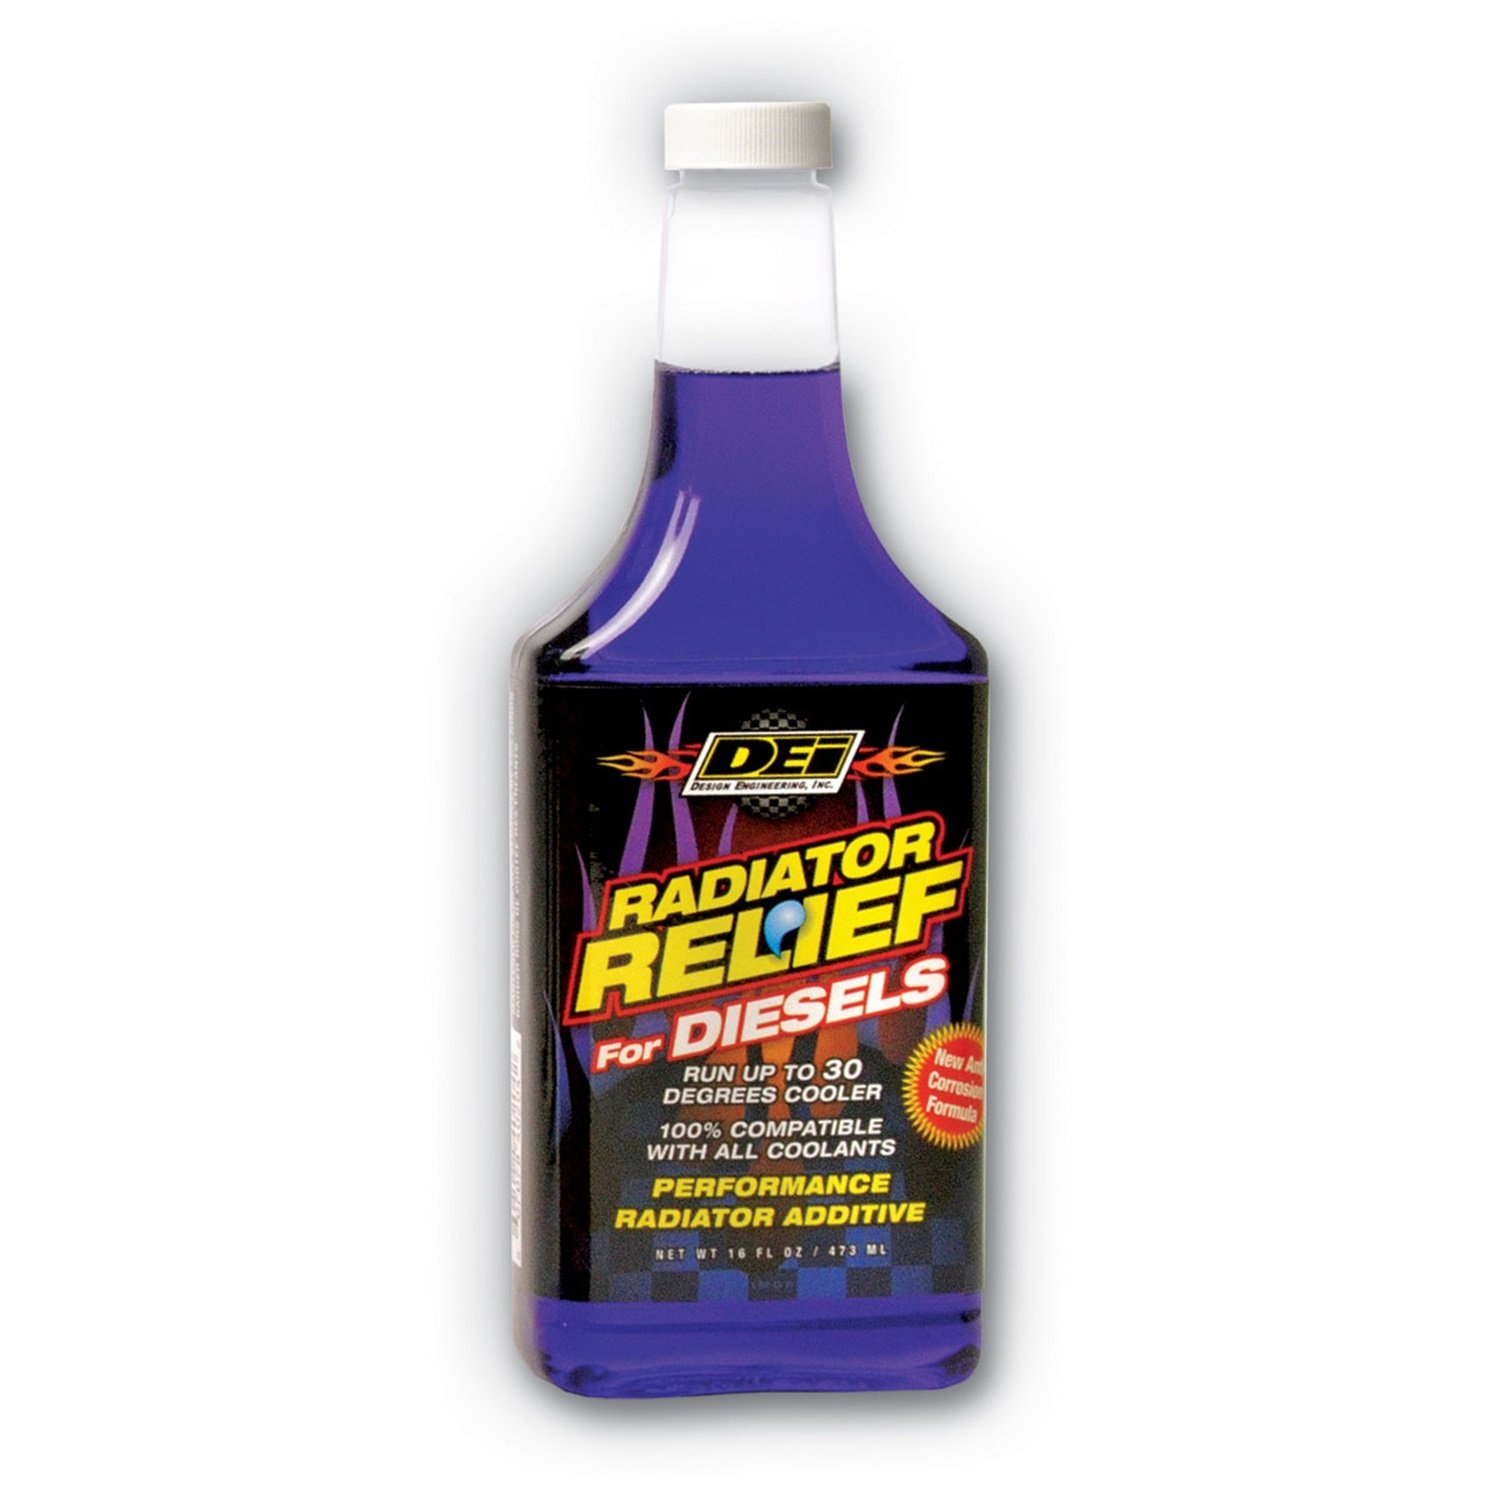 Design Engineering DEI 040204 Radiator Relief Coolant Additive for Diesels, 16 oz. by Design Engineering